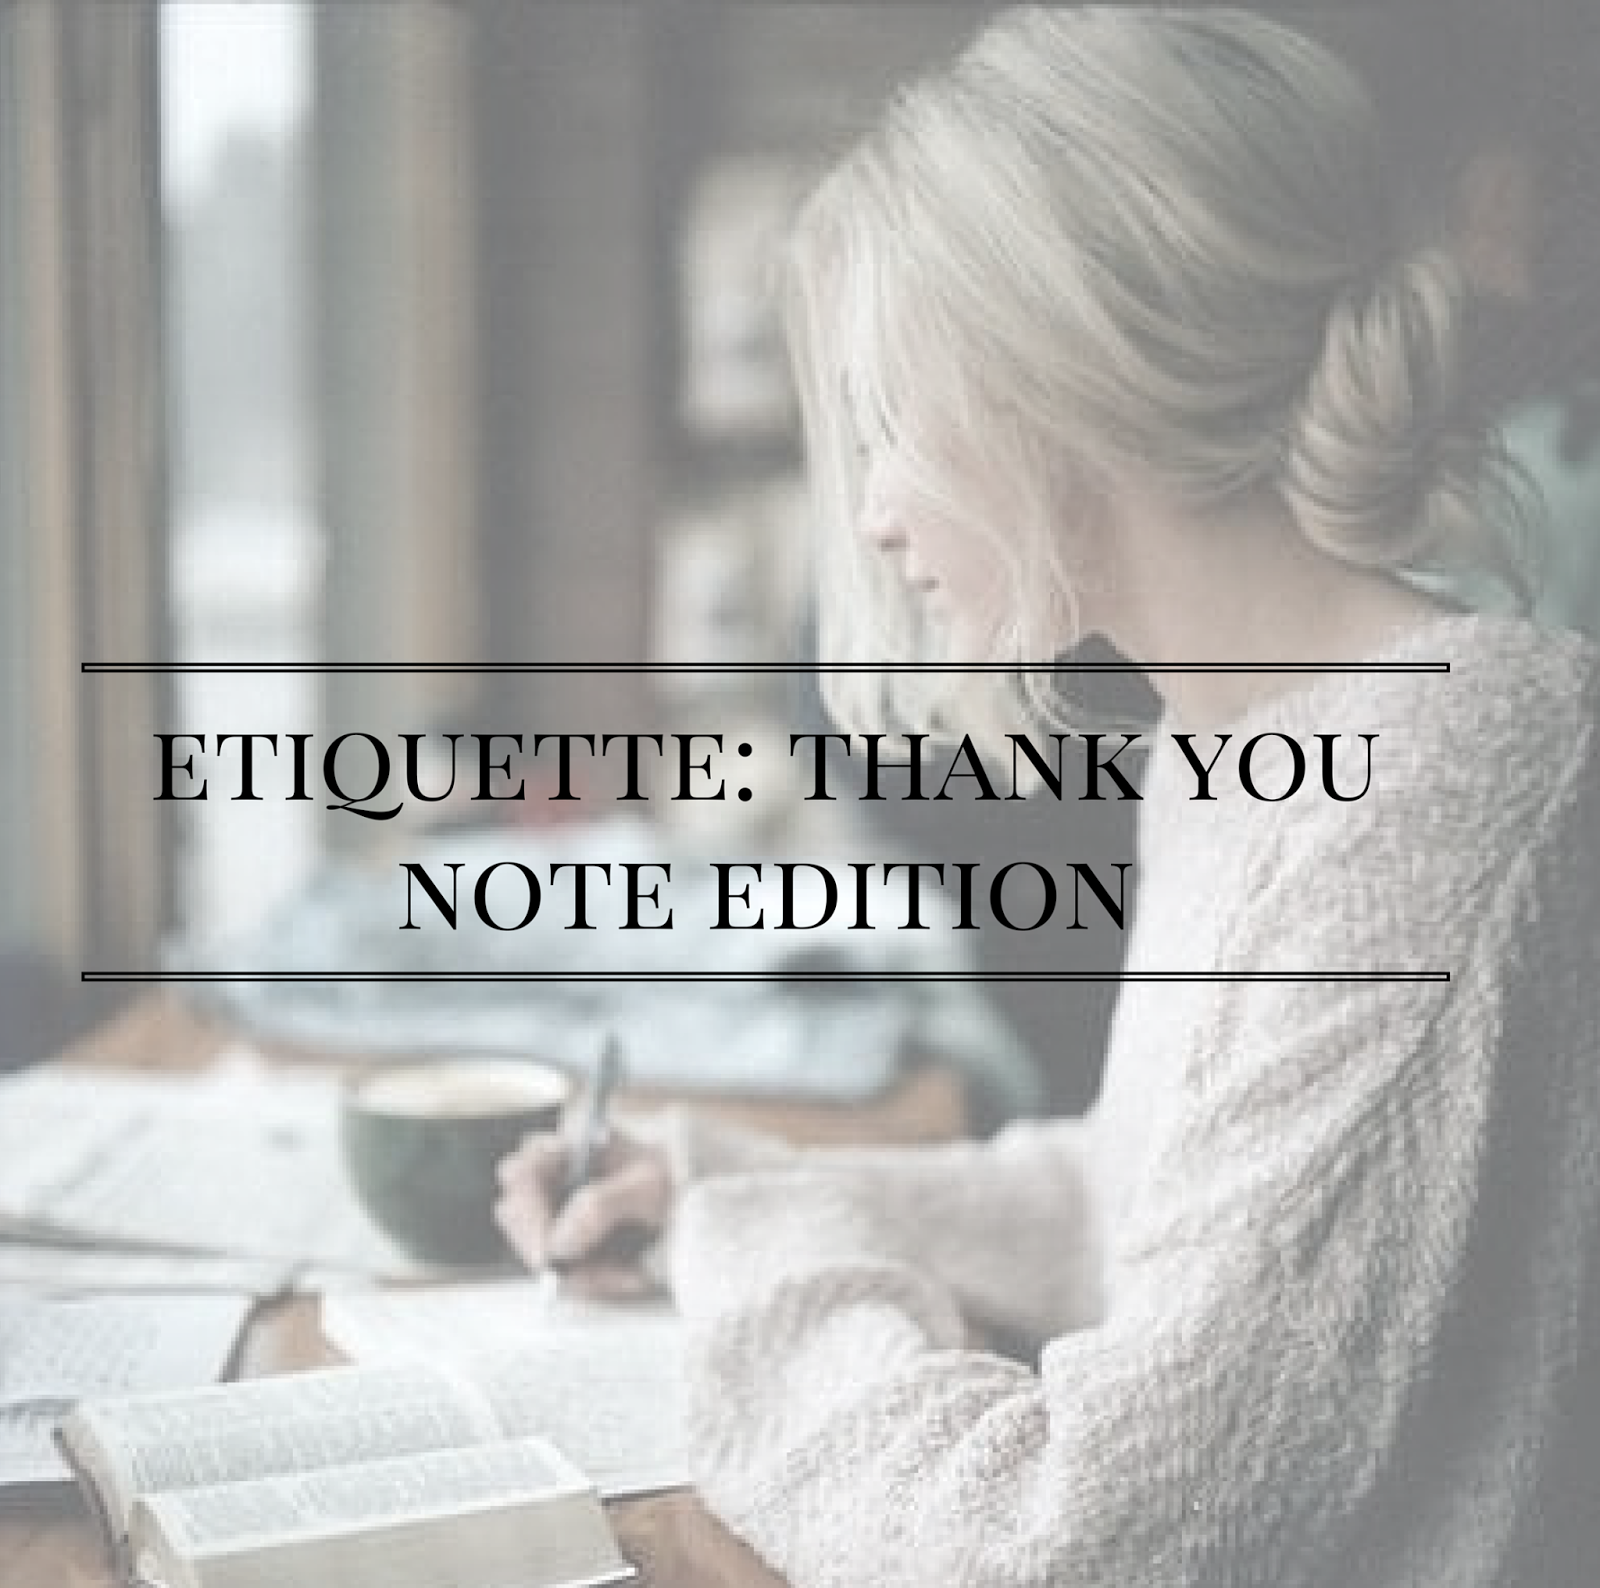 Etiquette: Thank You Note Edition | http://www.alyssajfreitas.com/2013/03/etiquette-thank-you-note-edition.html